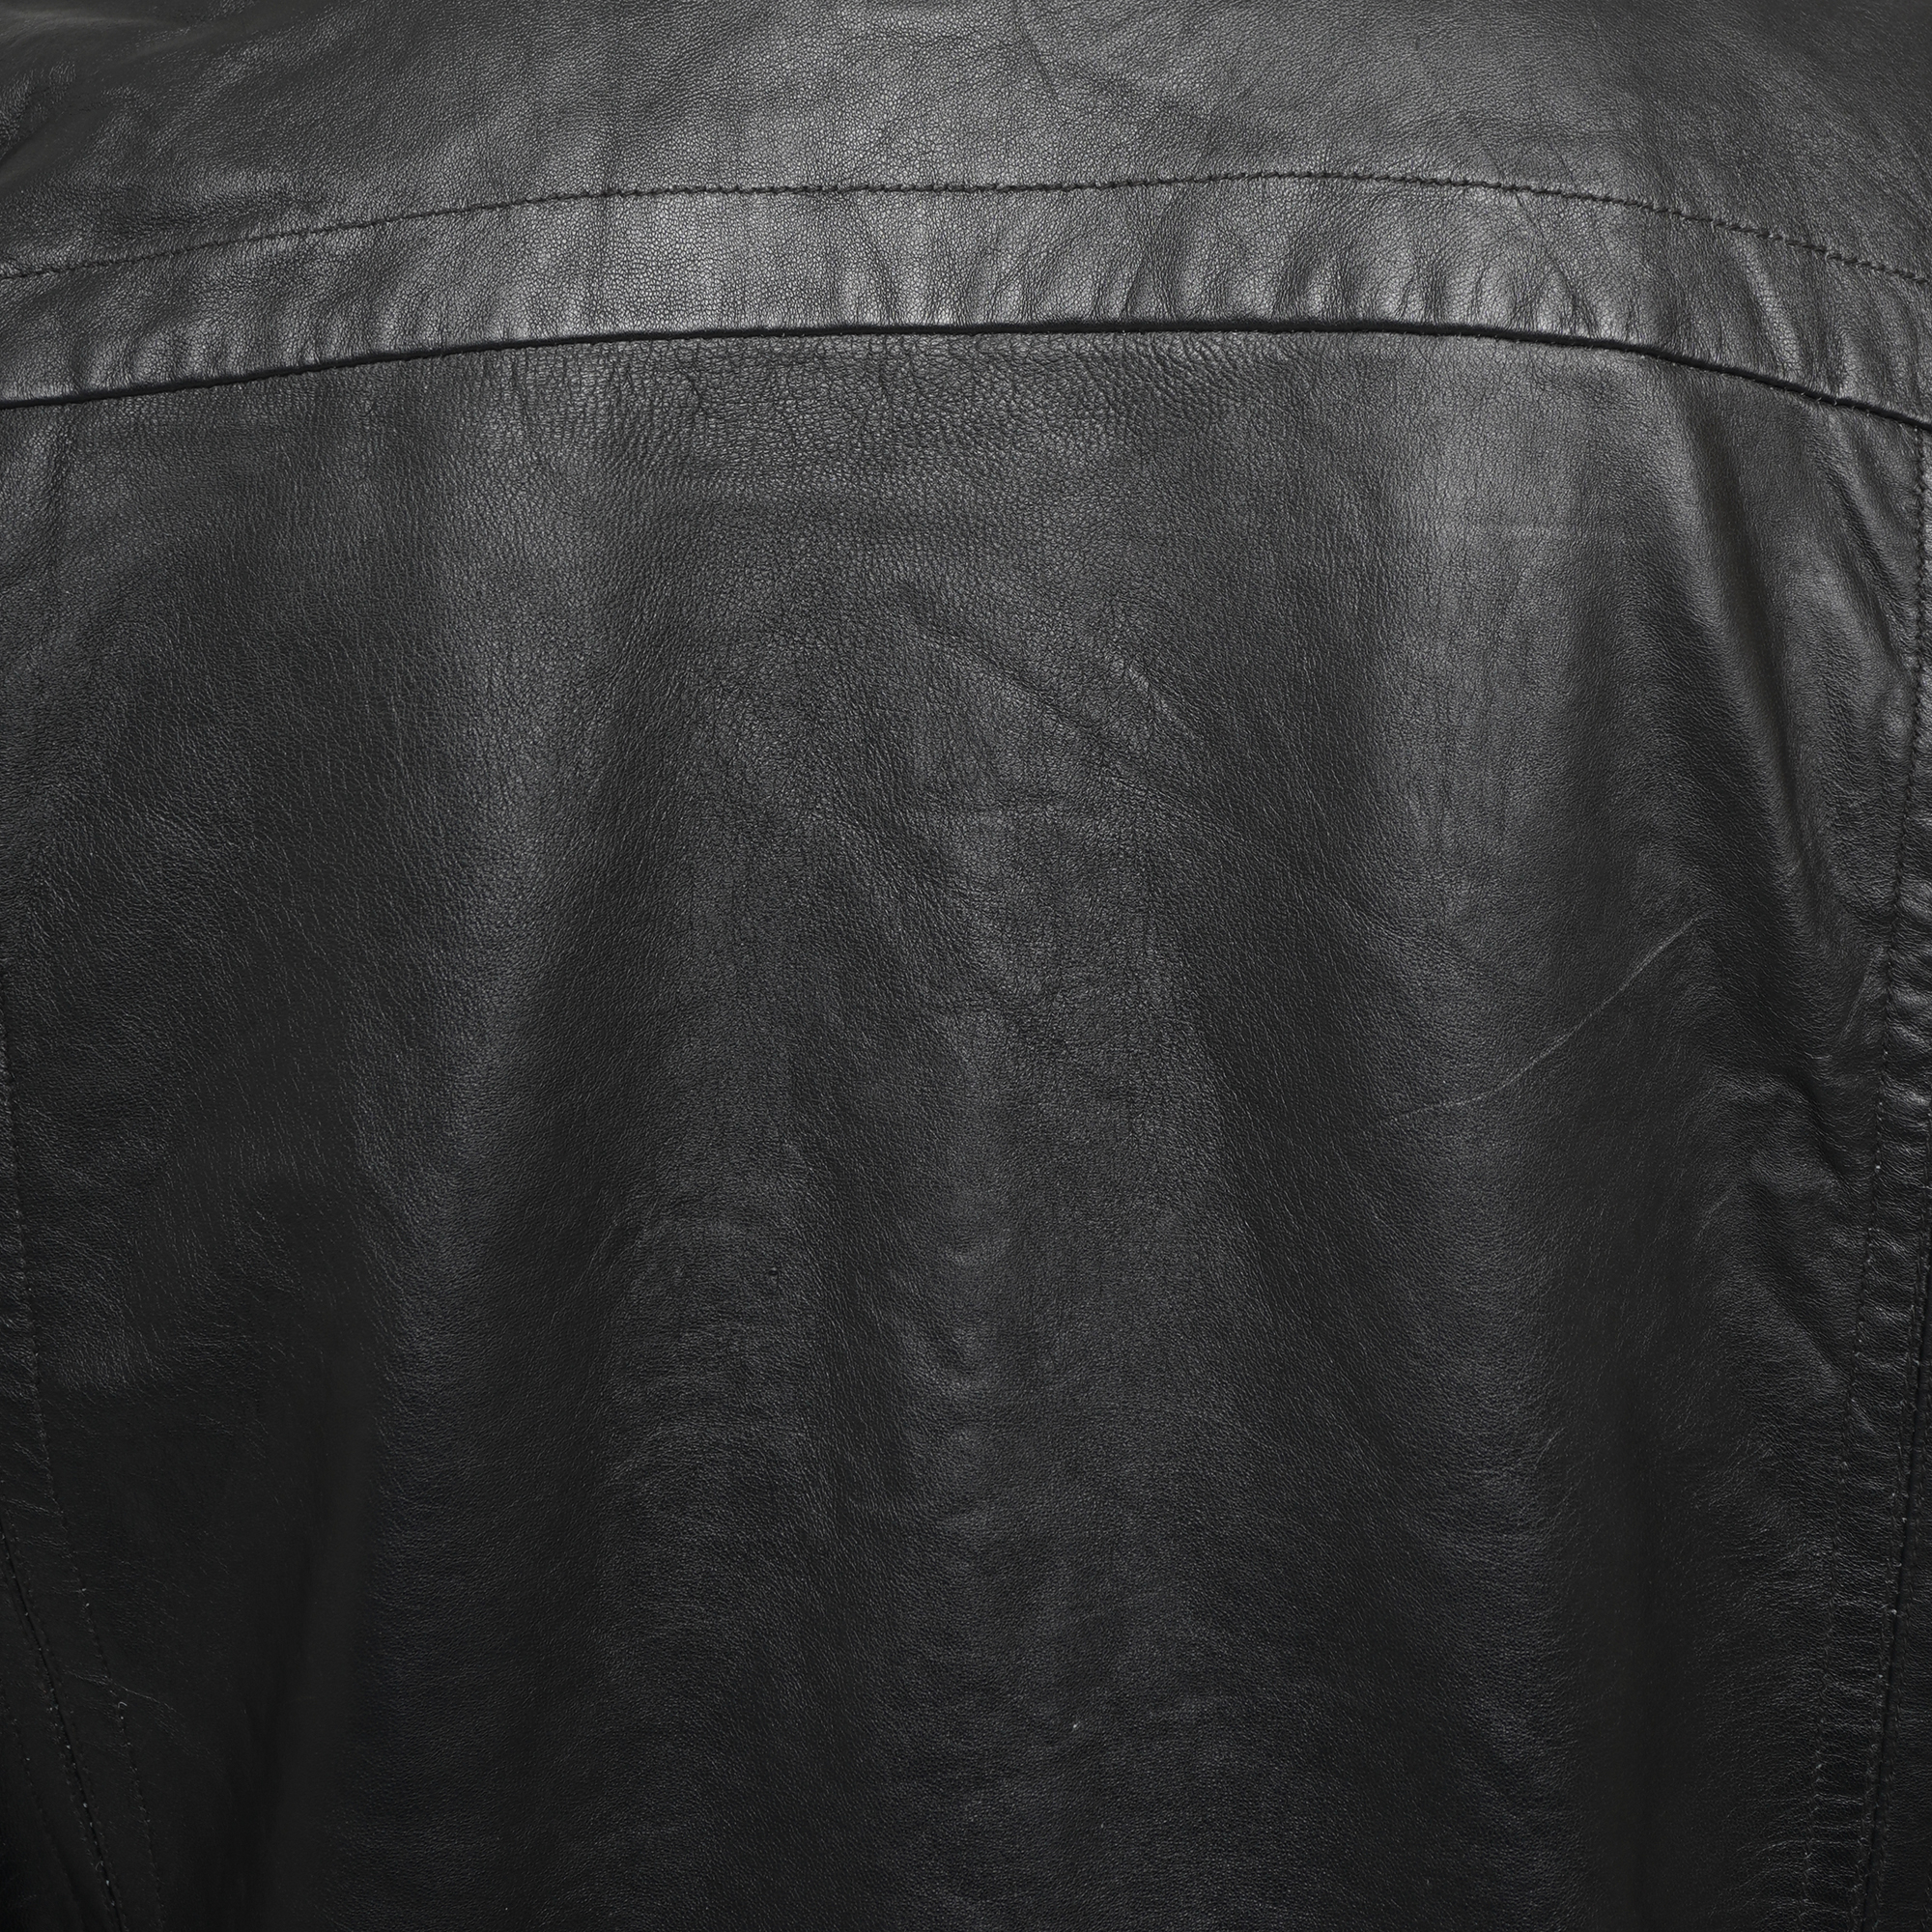 Approx. 200 x Black Leather Jacket - Image 4 of 4